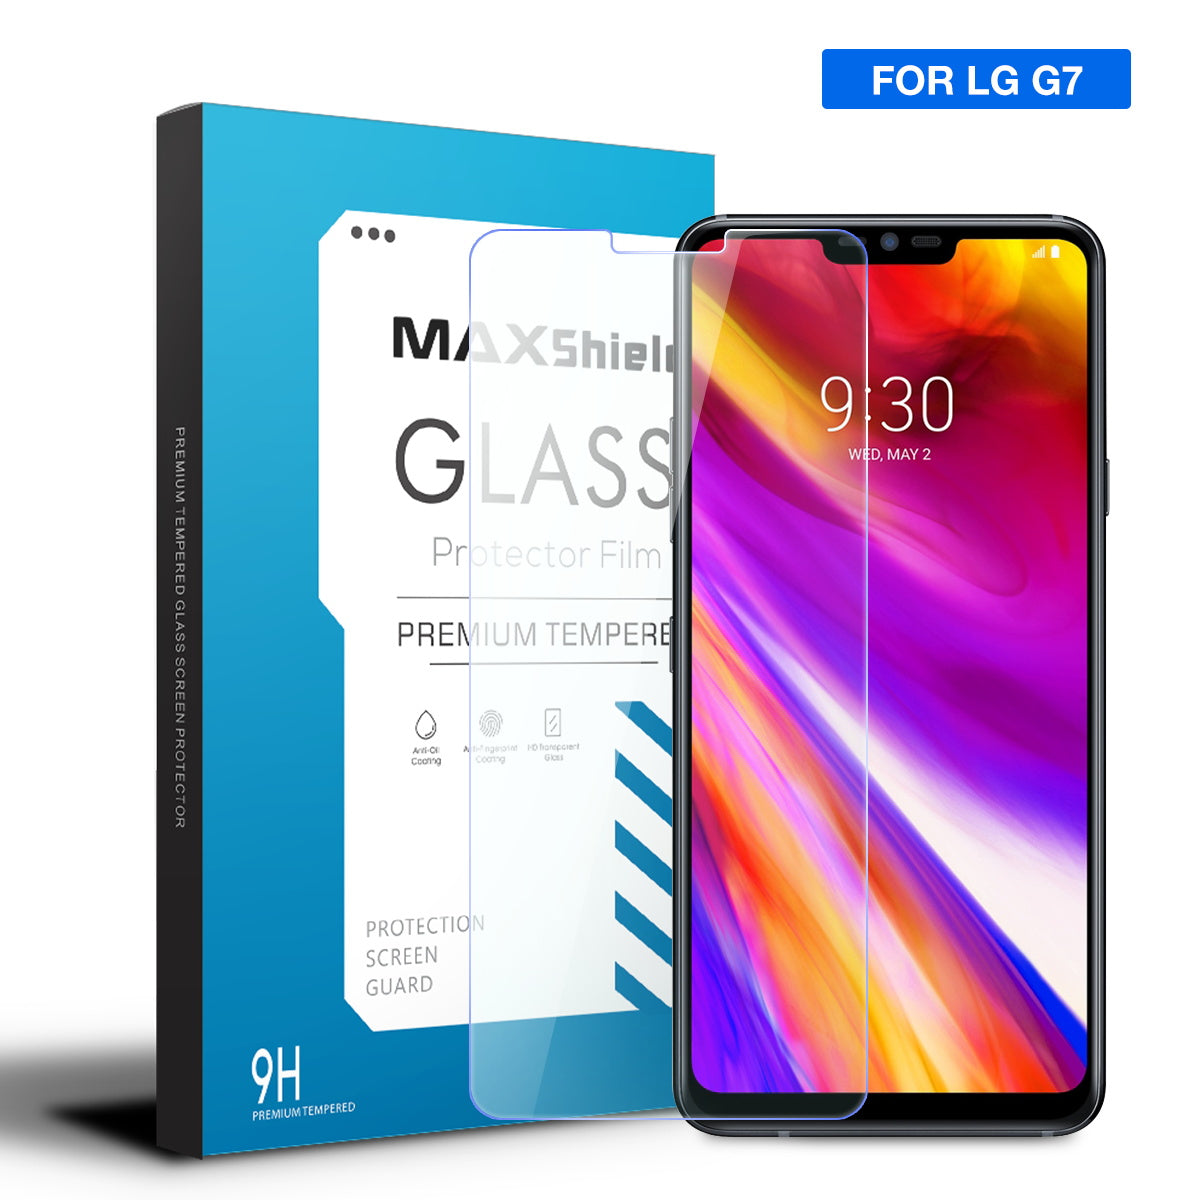 2X MaxShield LG G7 thinq Tempered Glass LCD Screen Protector Film Guard